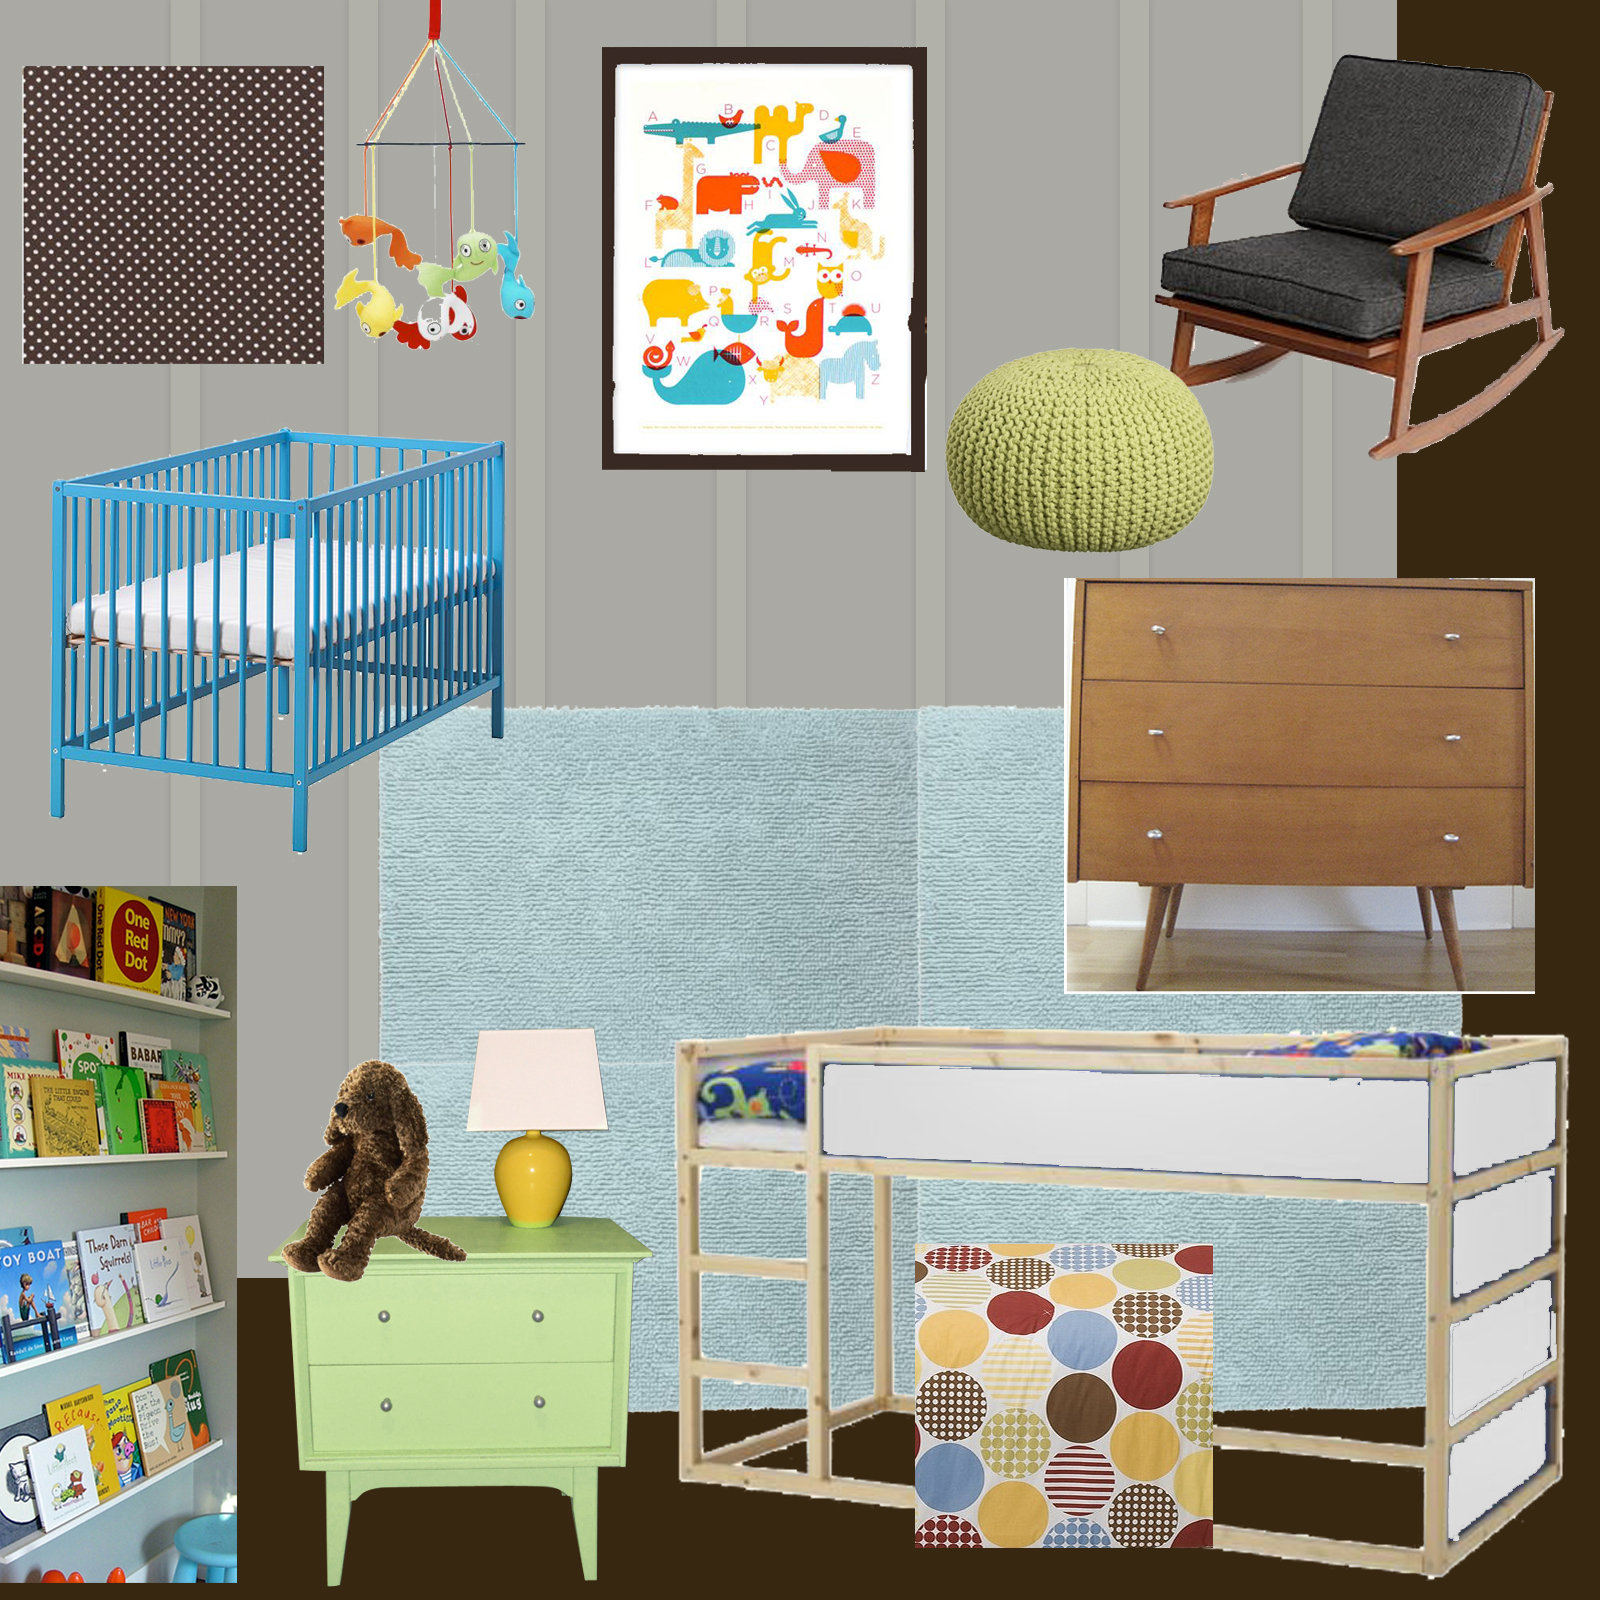 Gender Neutral Kids Room Ideas: Preparing A Bedroom For Foster Kids: Furniture & Decor